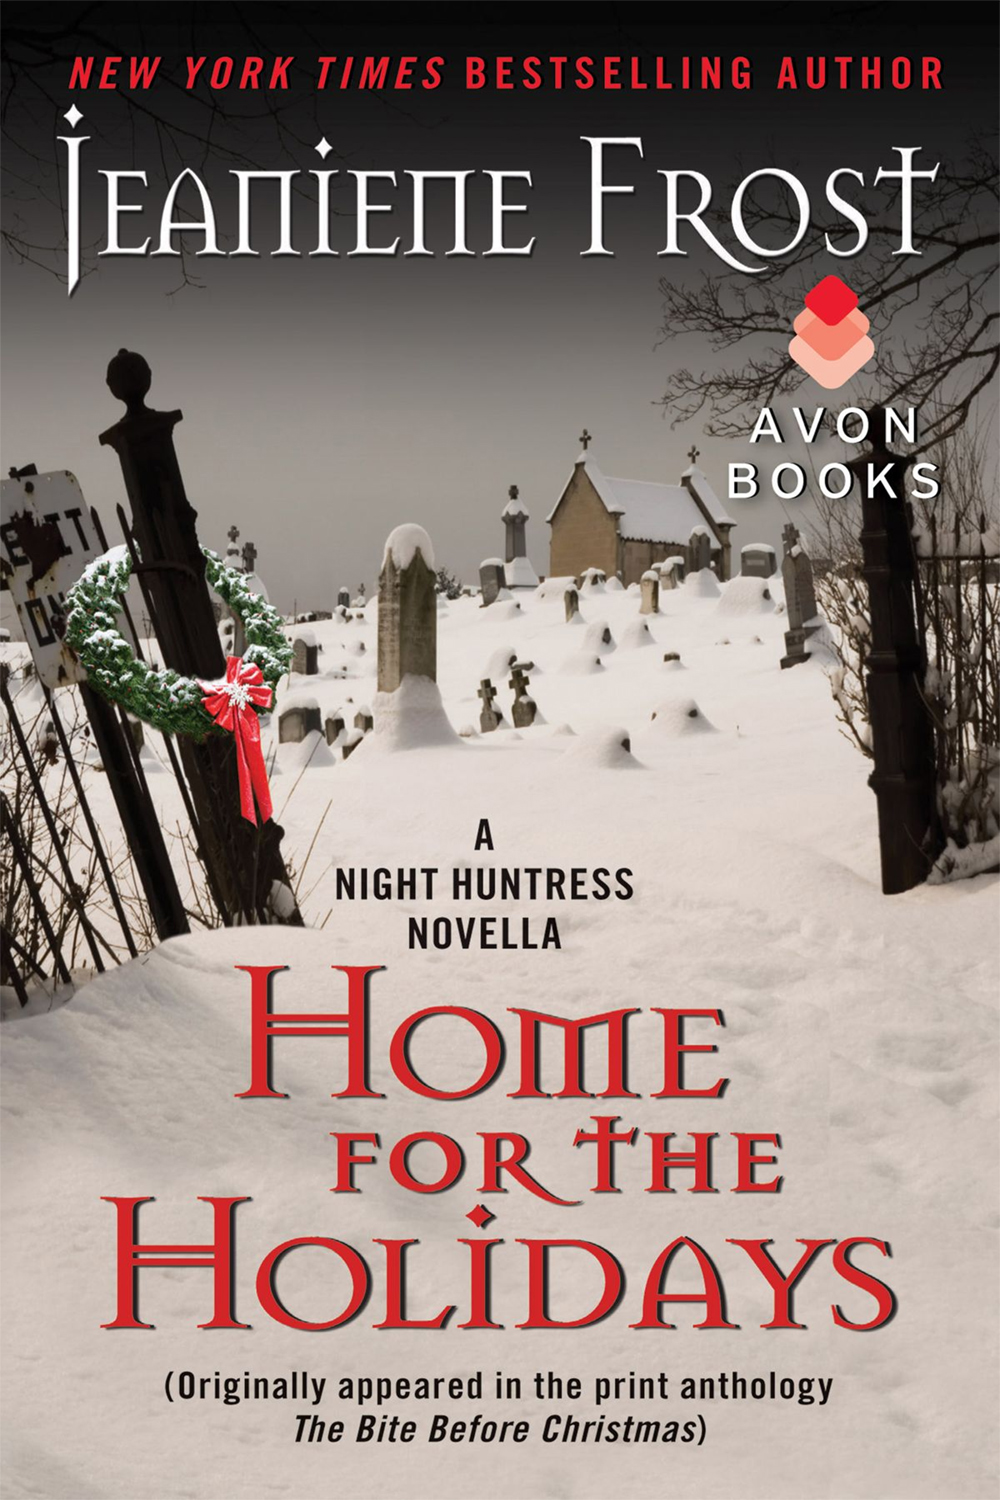 S1 E31 Home for the Holidays by Jeaniene Frost